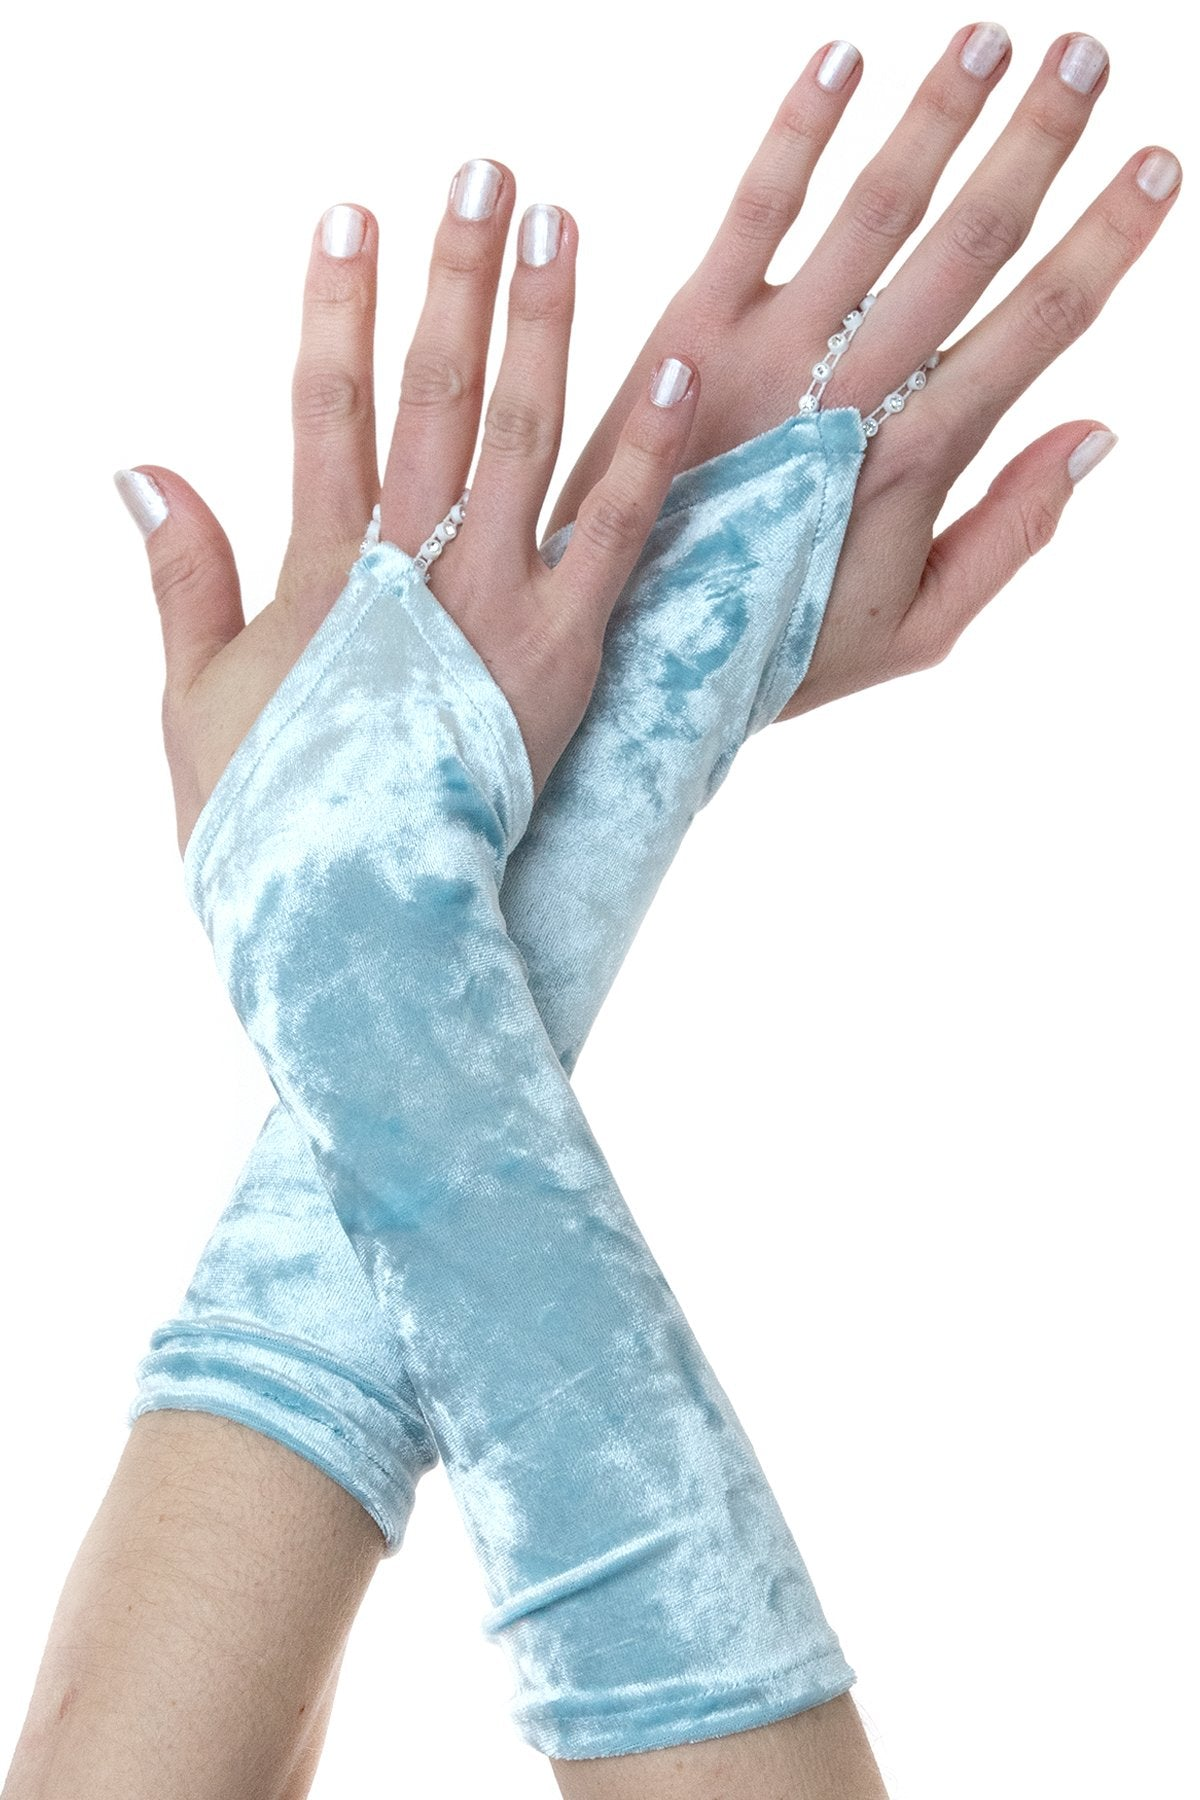 ☆Heavenly Glam Fingerless Gloves☆